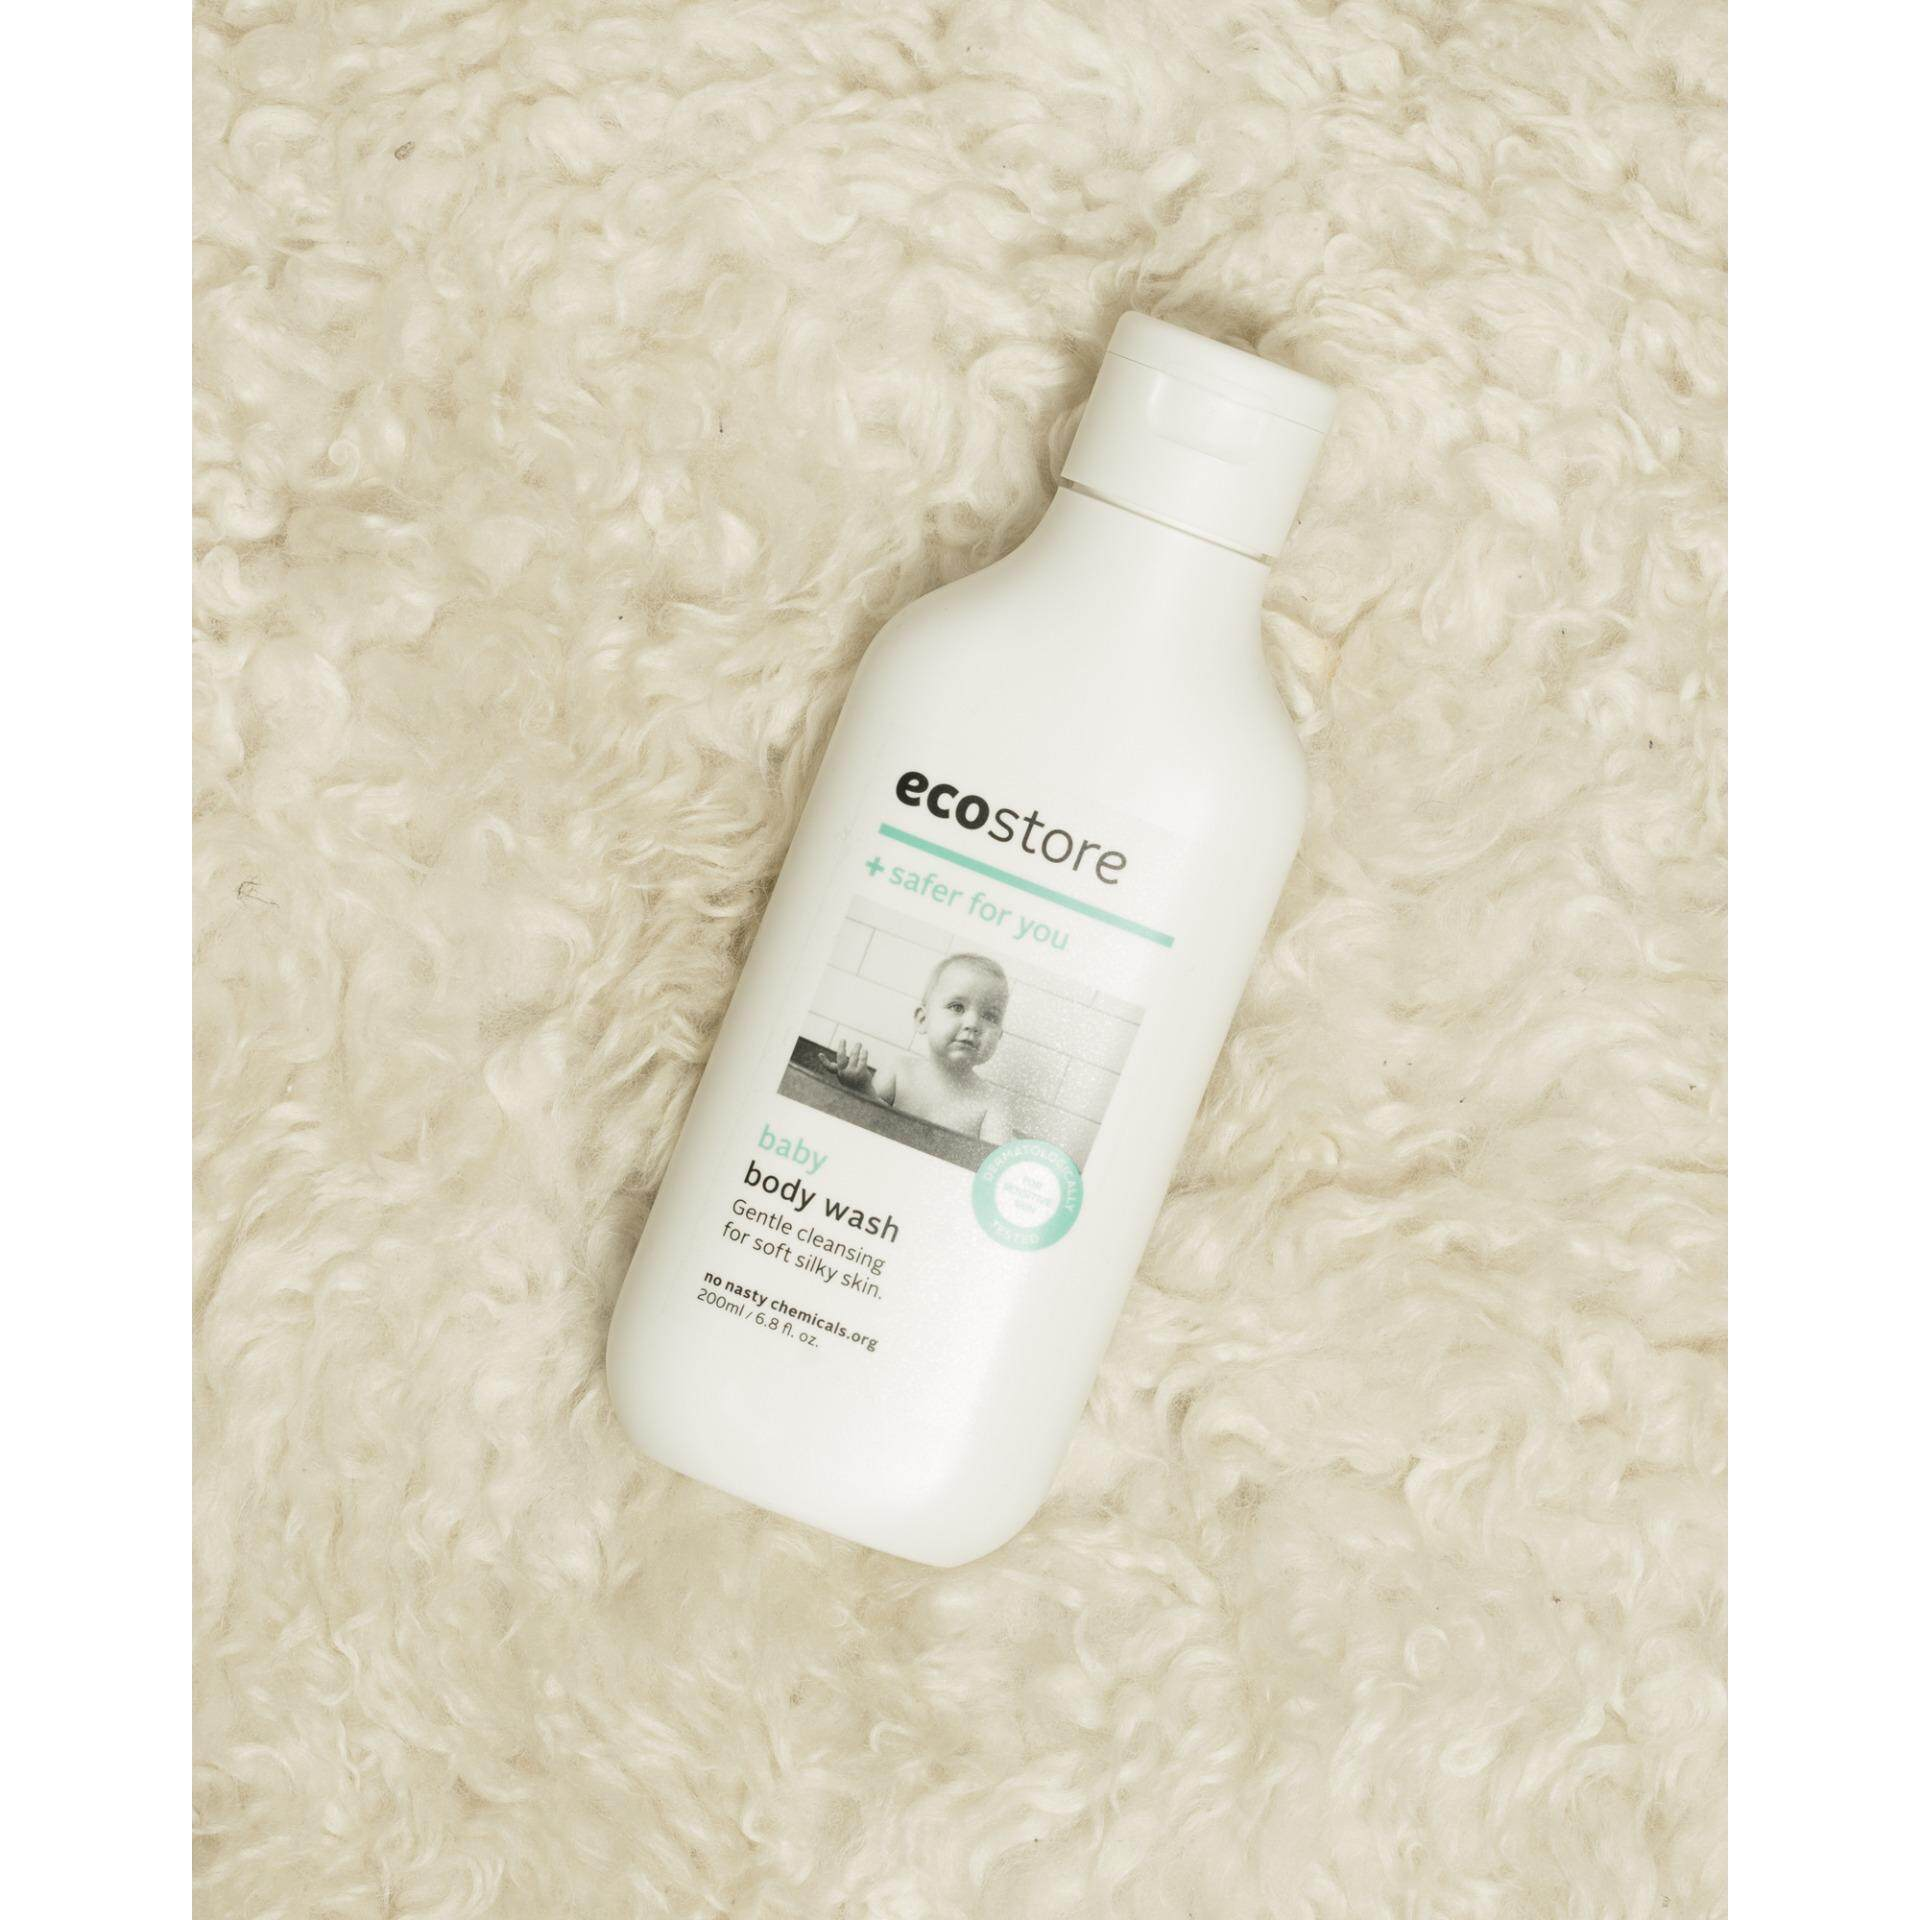 Fitur Pigeon Kids Hair Body Wash Liquid Strawberry Grape 200 Ml Sebamed Face 200ml Detail Gambar Ecostore Baby Terbaru